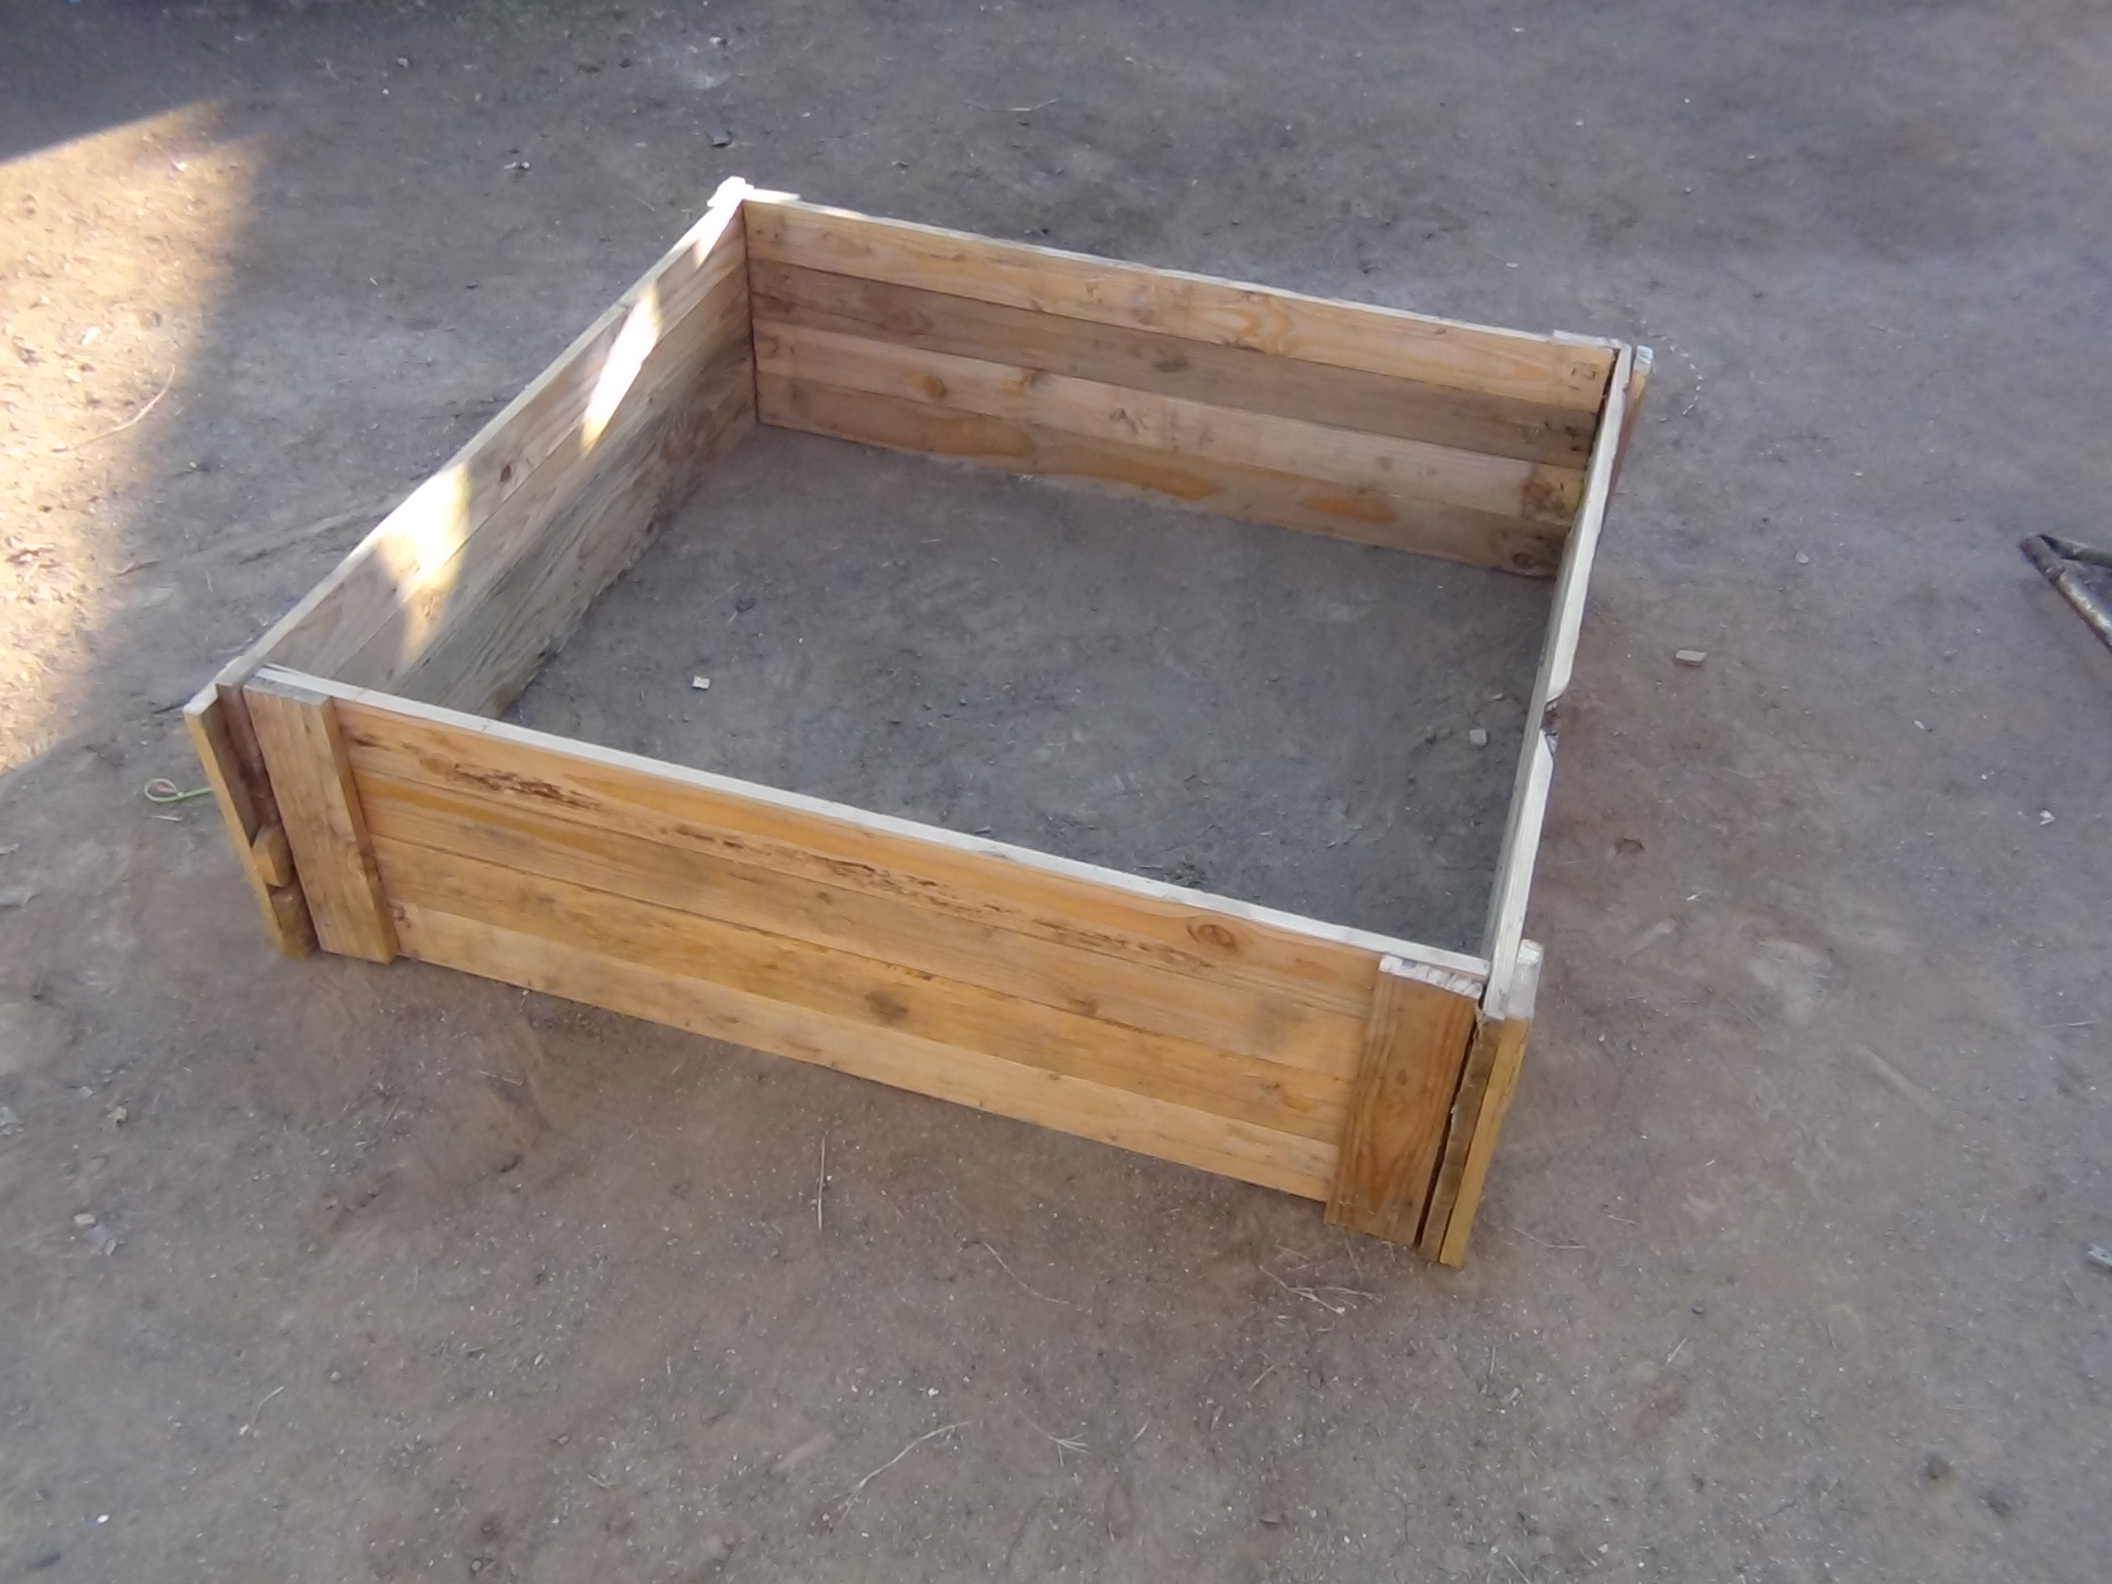 How to Make a Raised Bed Garden Box From Wood Pallets. : 5 ... Raised Vegetable Garden Box Designs on